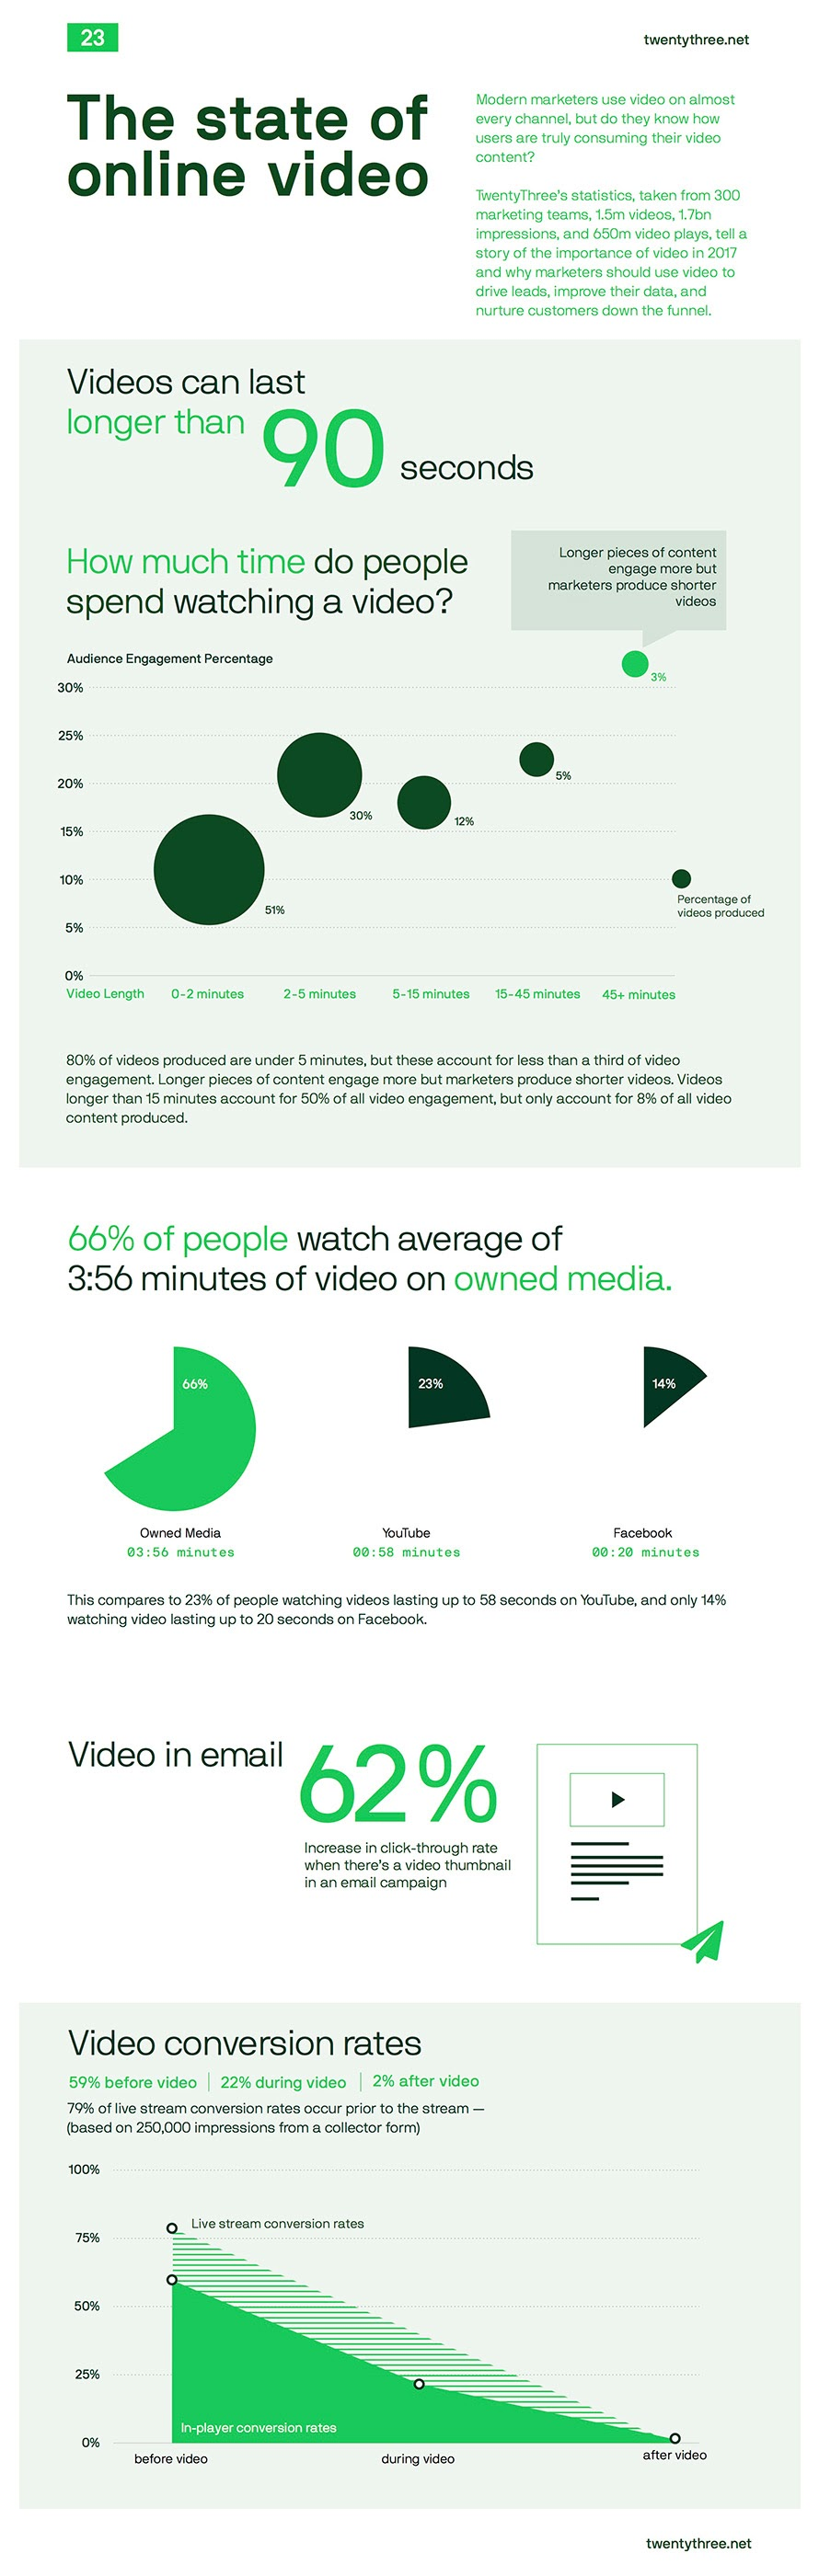 The State of Online Video - #infographic